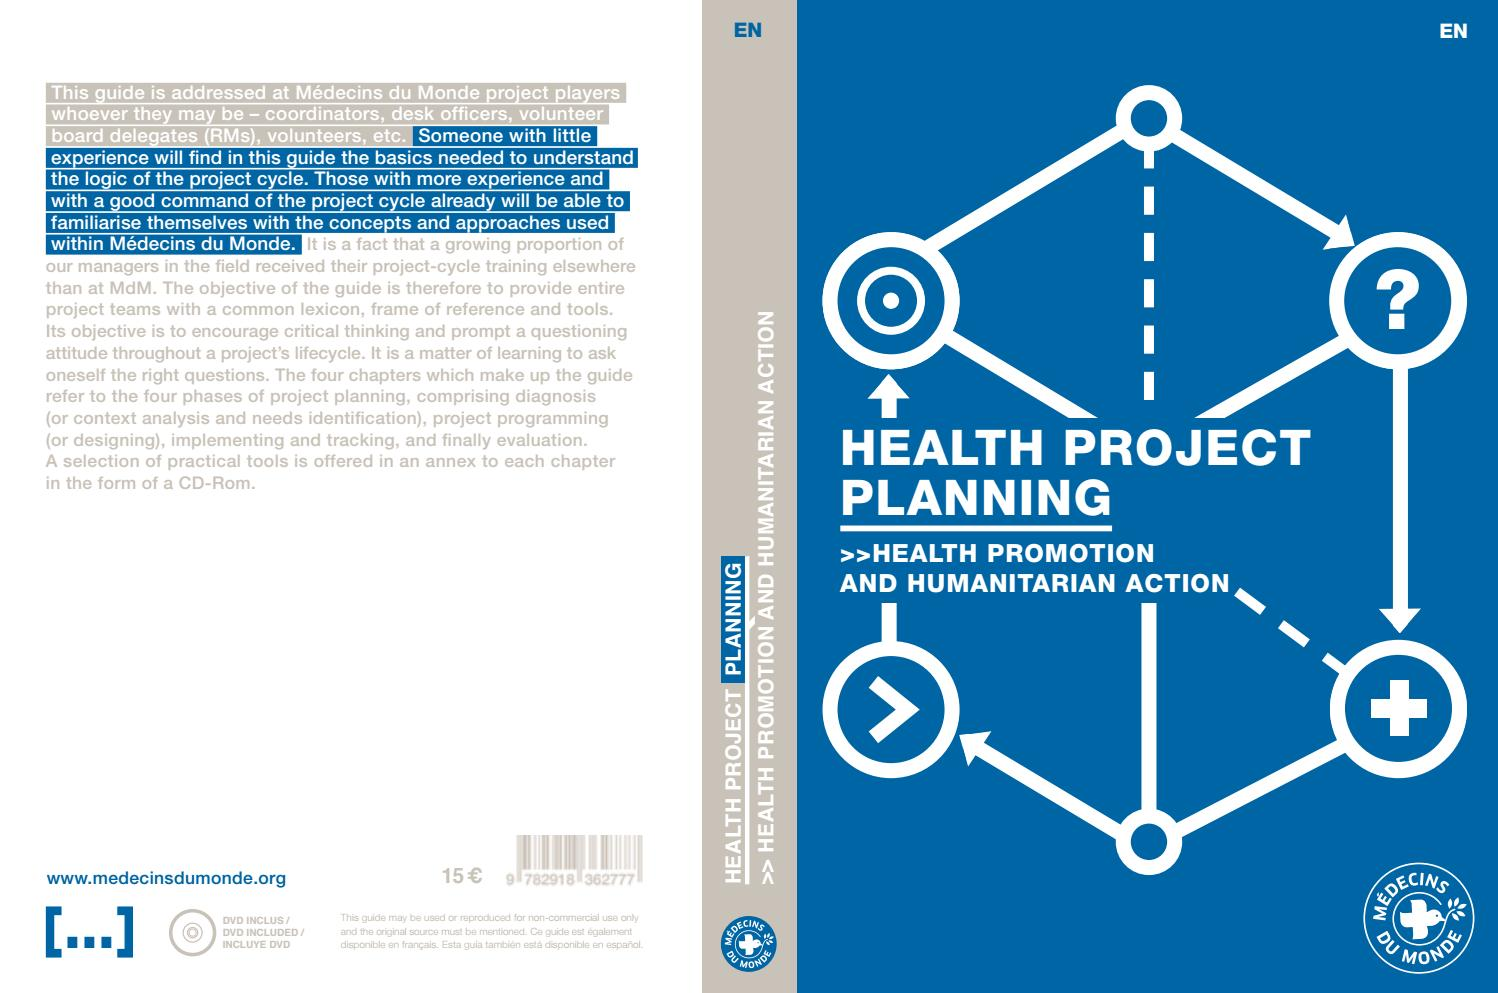 MdM health project planning guide 2015 by Médecins du Monde - issuu